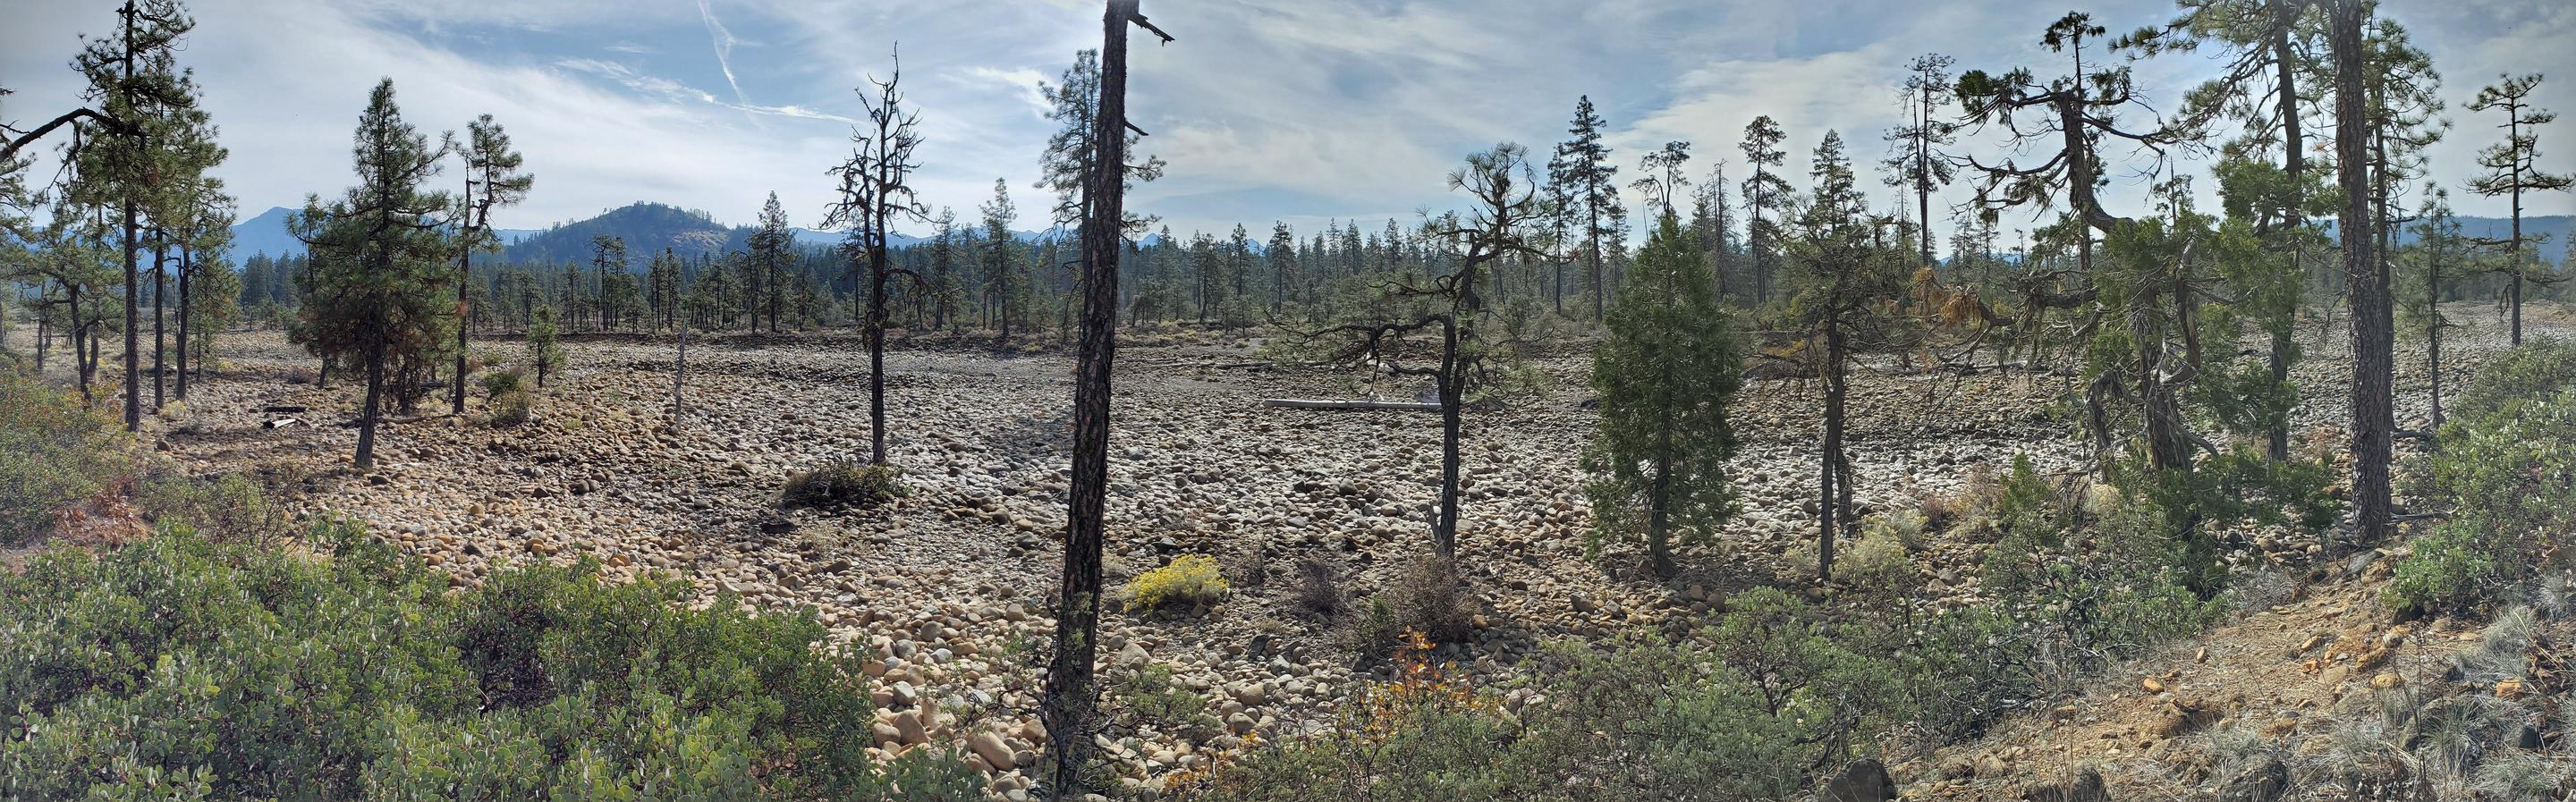 Panoramic view along the Rough and Ready Flat trail.